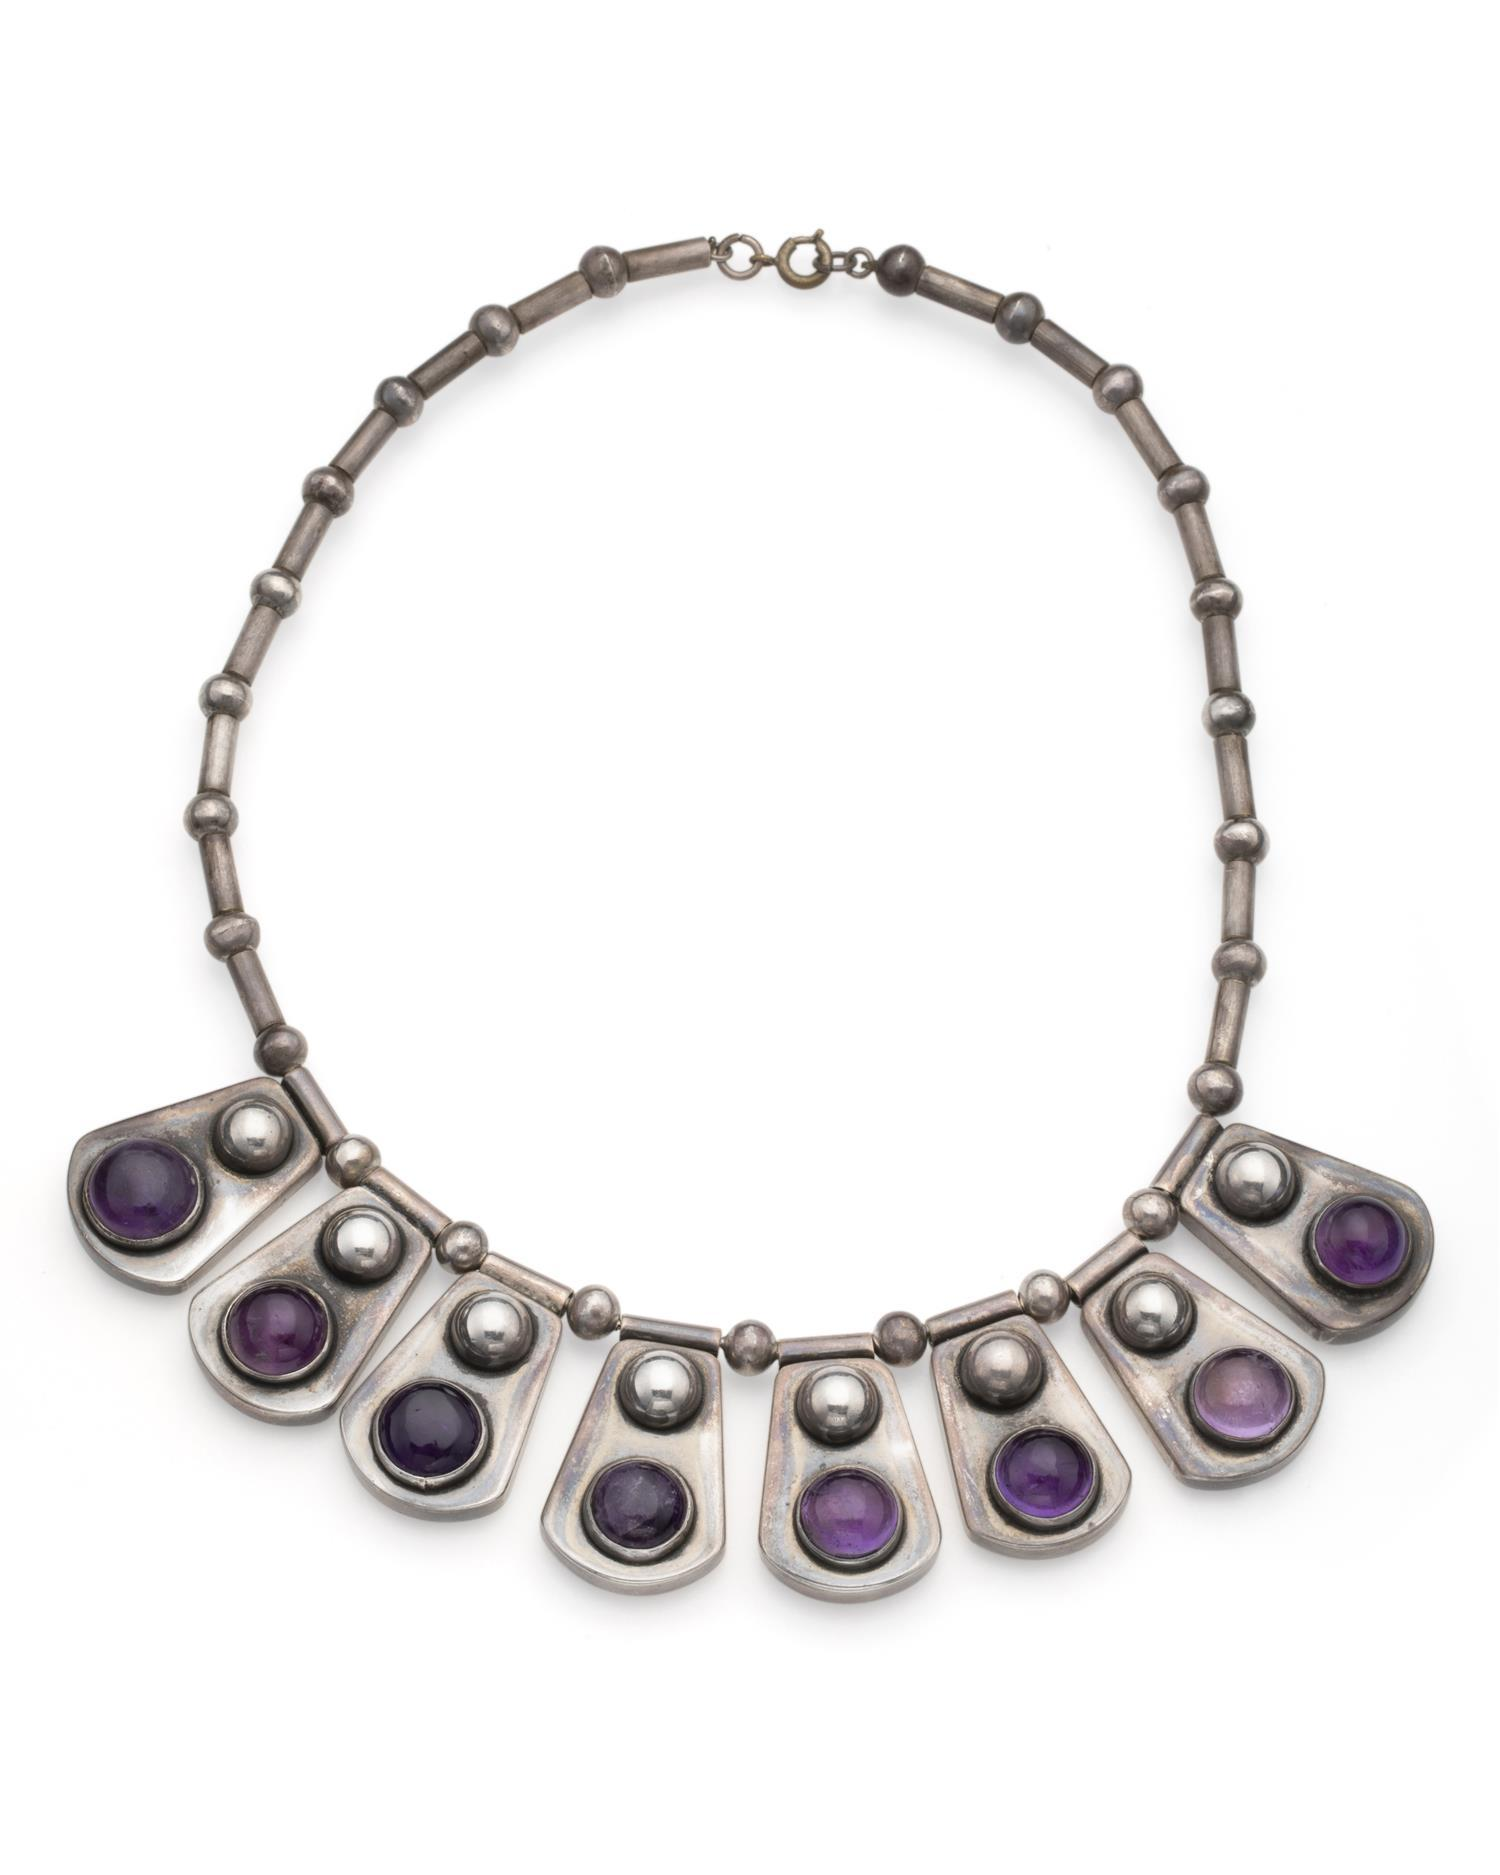 A Rafael Dominguez silver and amethyst necklace